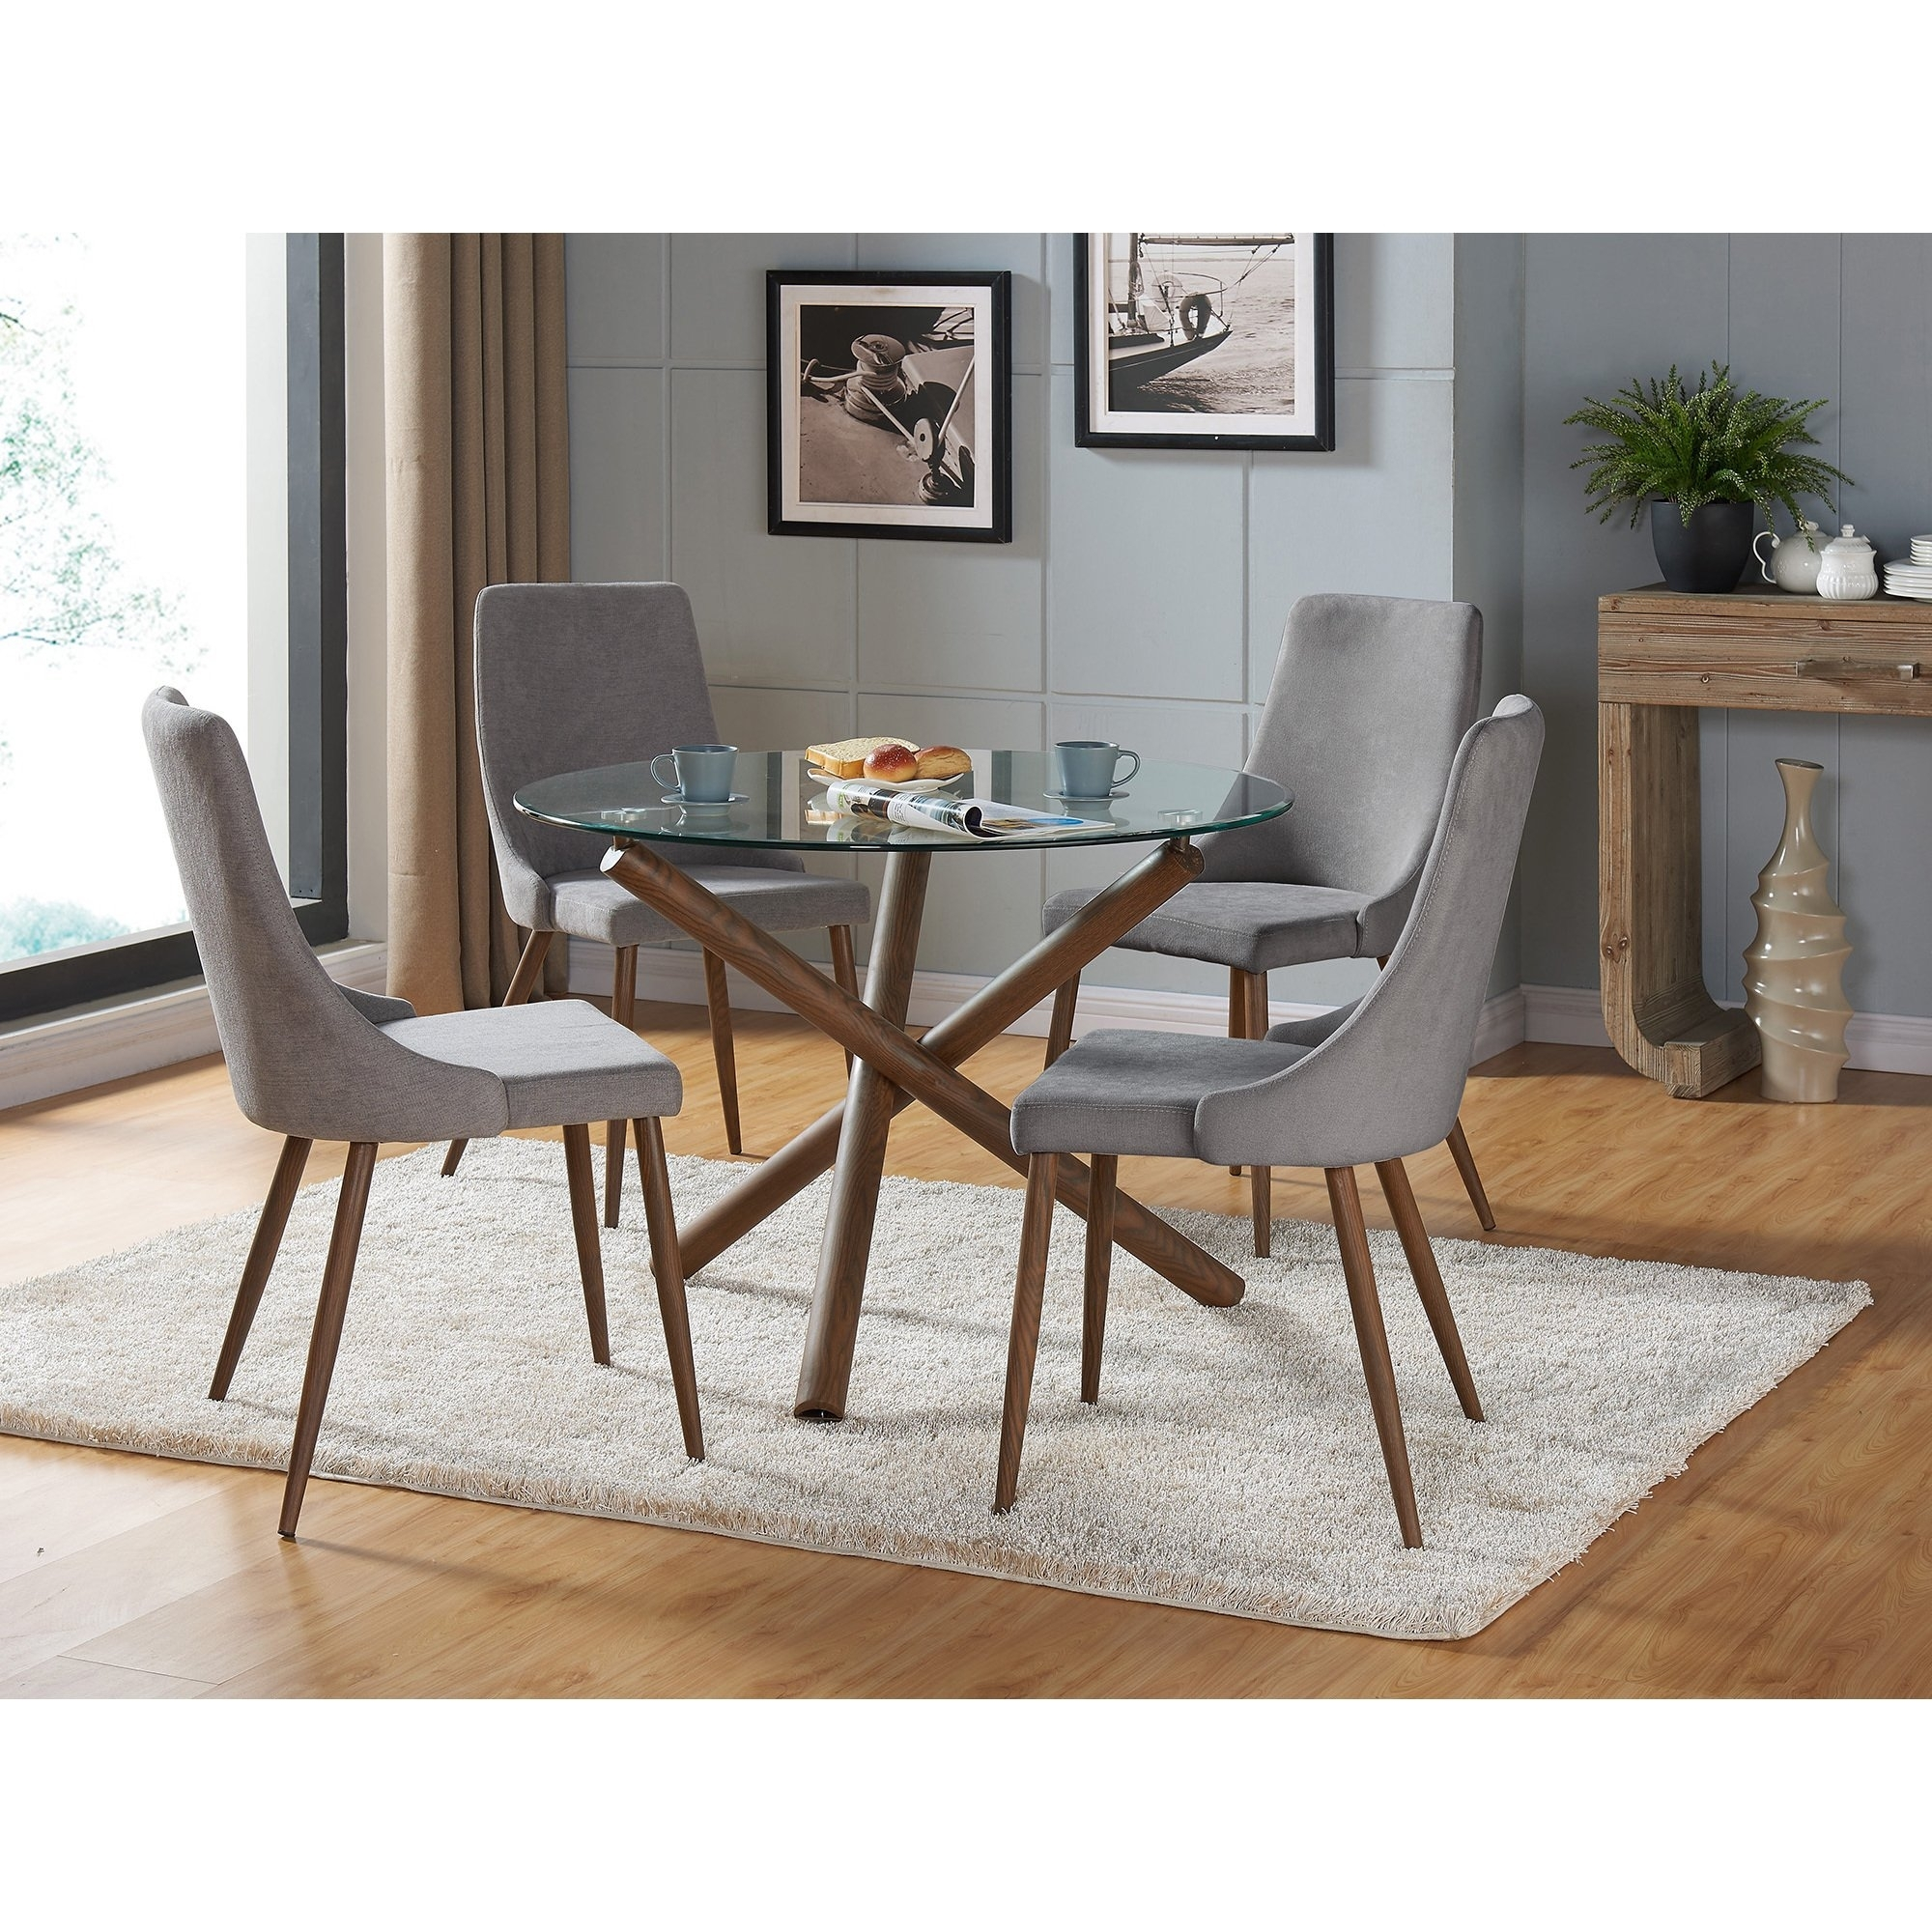 Shop Carson Carrington Kaskinen Dining Chair (Set Of 2) – Free In Newest Cora 5 Piece Dining Sets (Image 17 of 20)